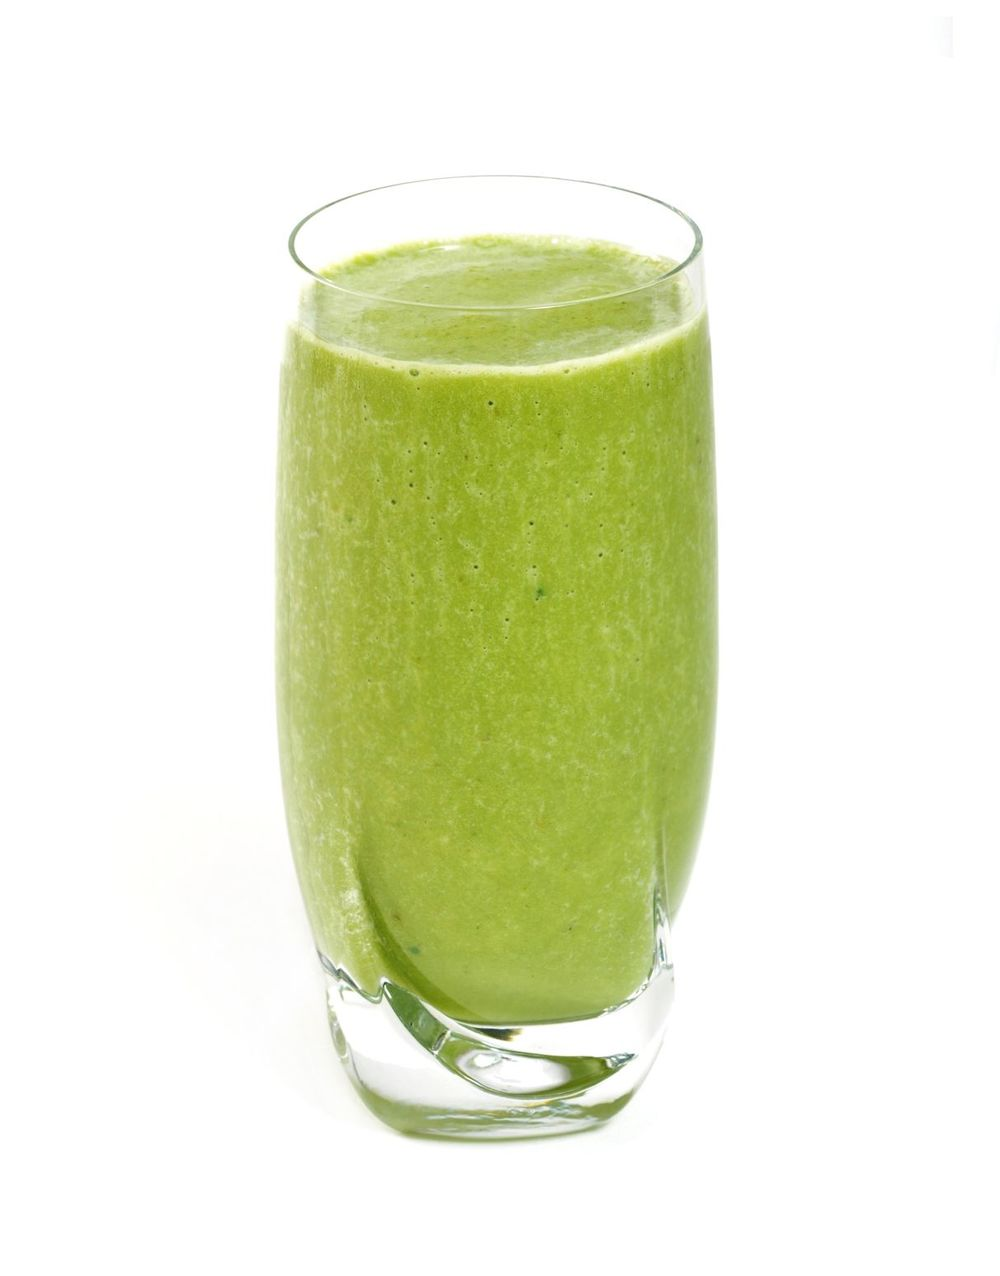 make a matcha smoothie